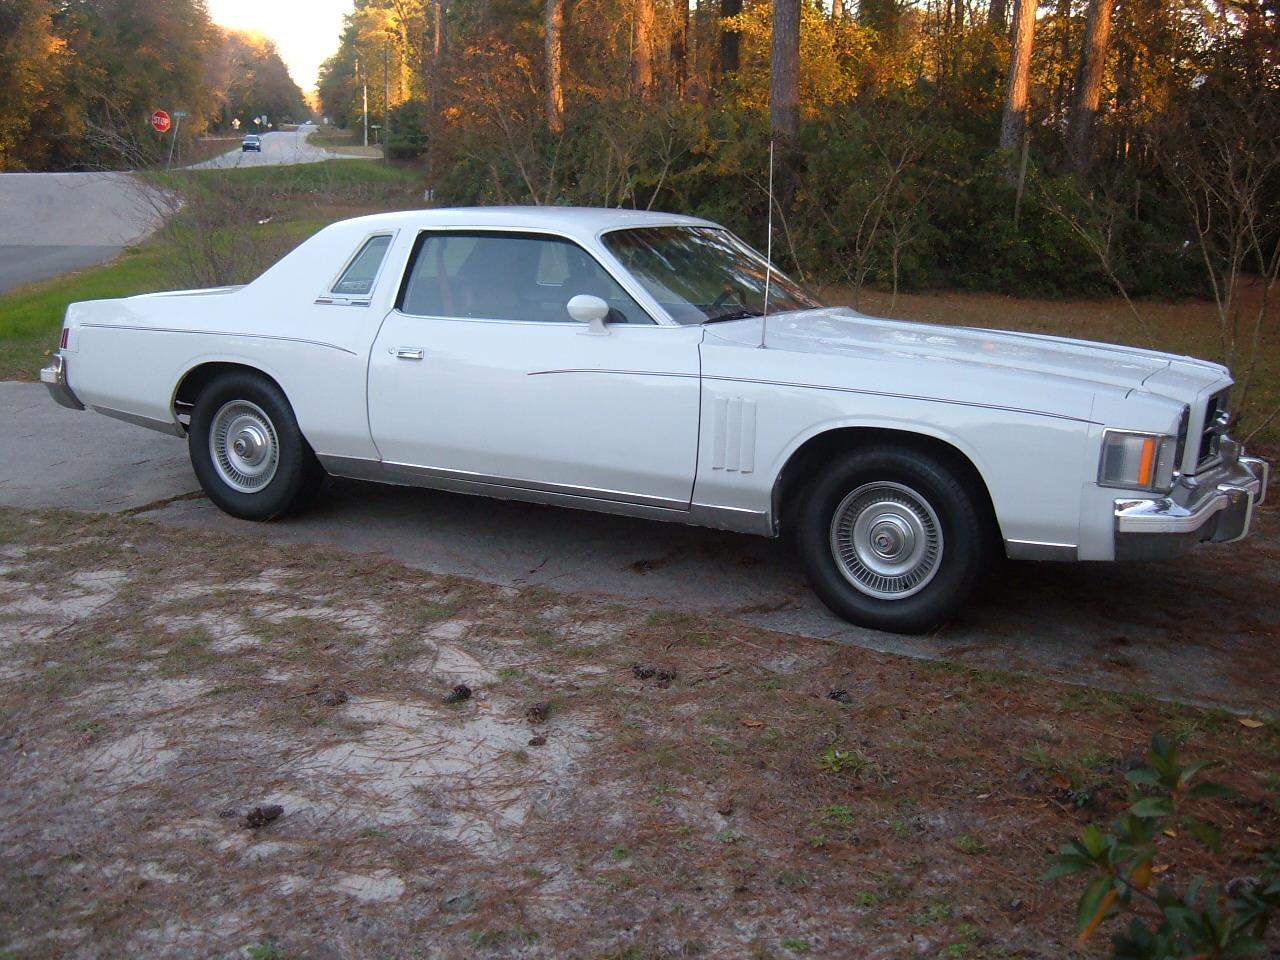 Large Picture of 1979 300 located in Georgia - $4,500.00 Offered by a Private Seller - C2IN